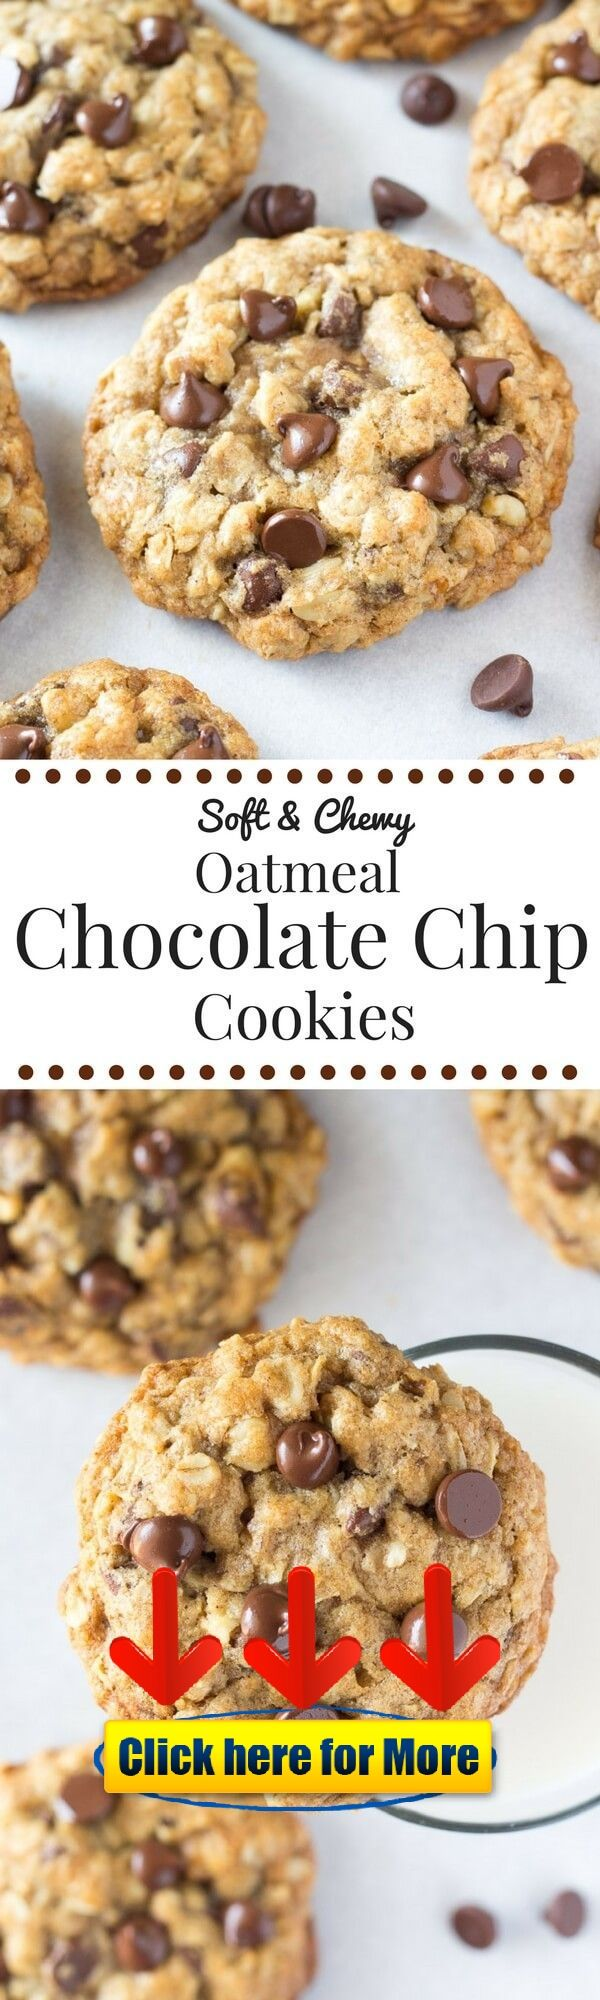 Soft and Chewy Oatmeal Chocolate Chip Cookies 👈 recipes